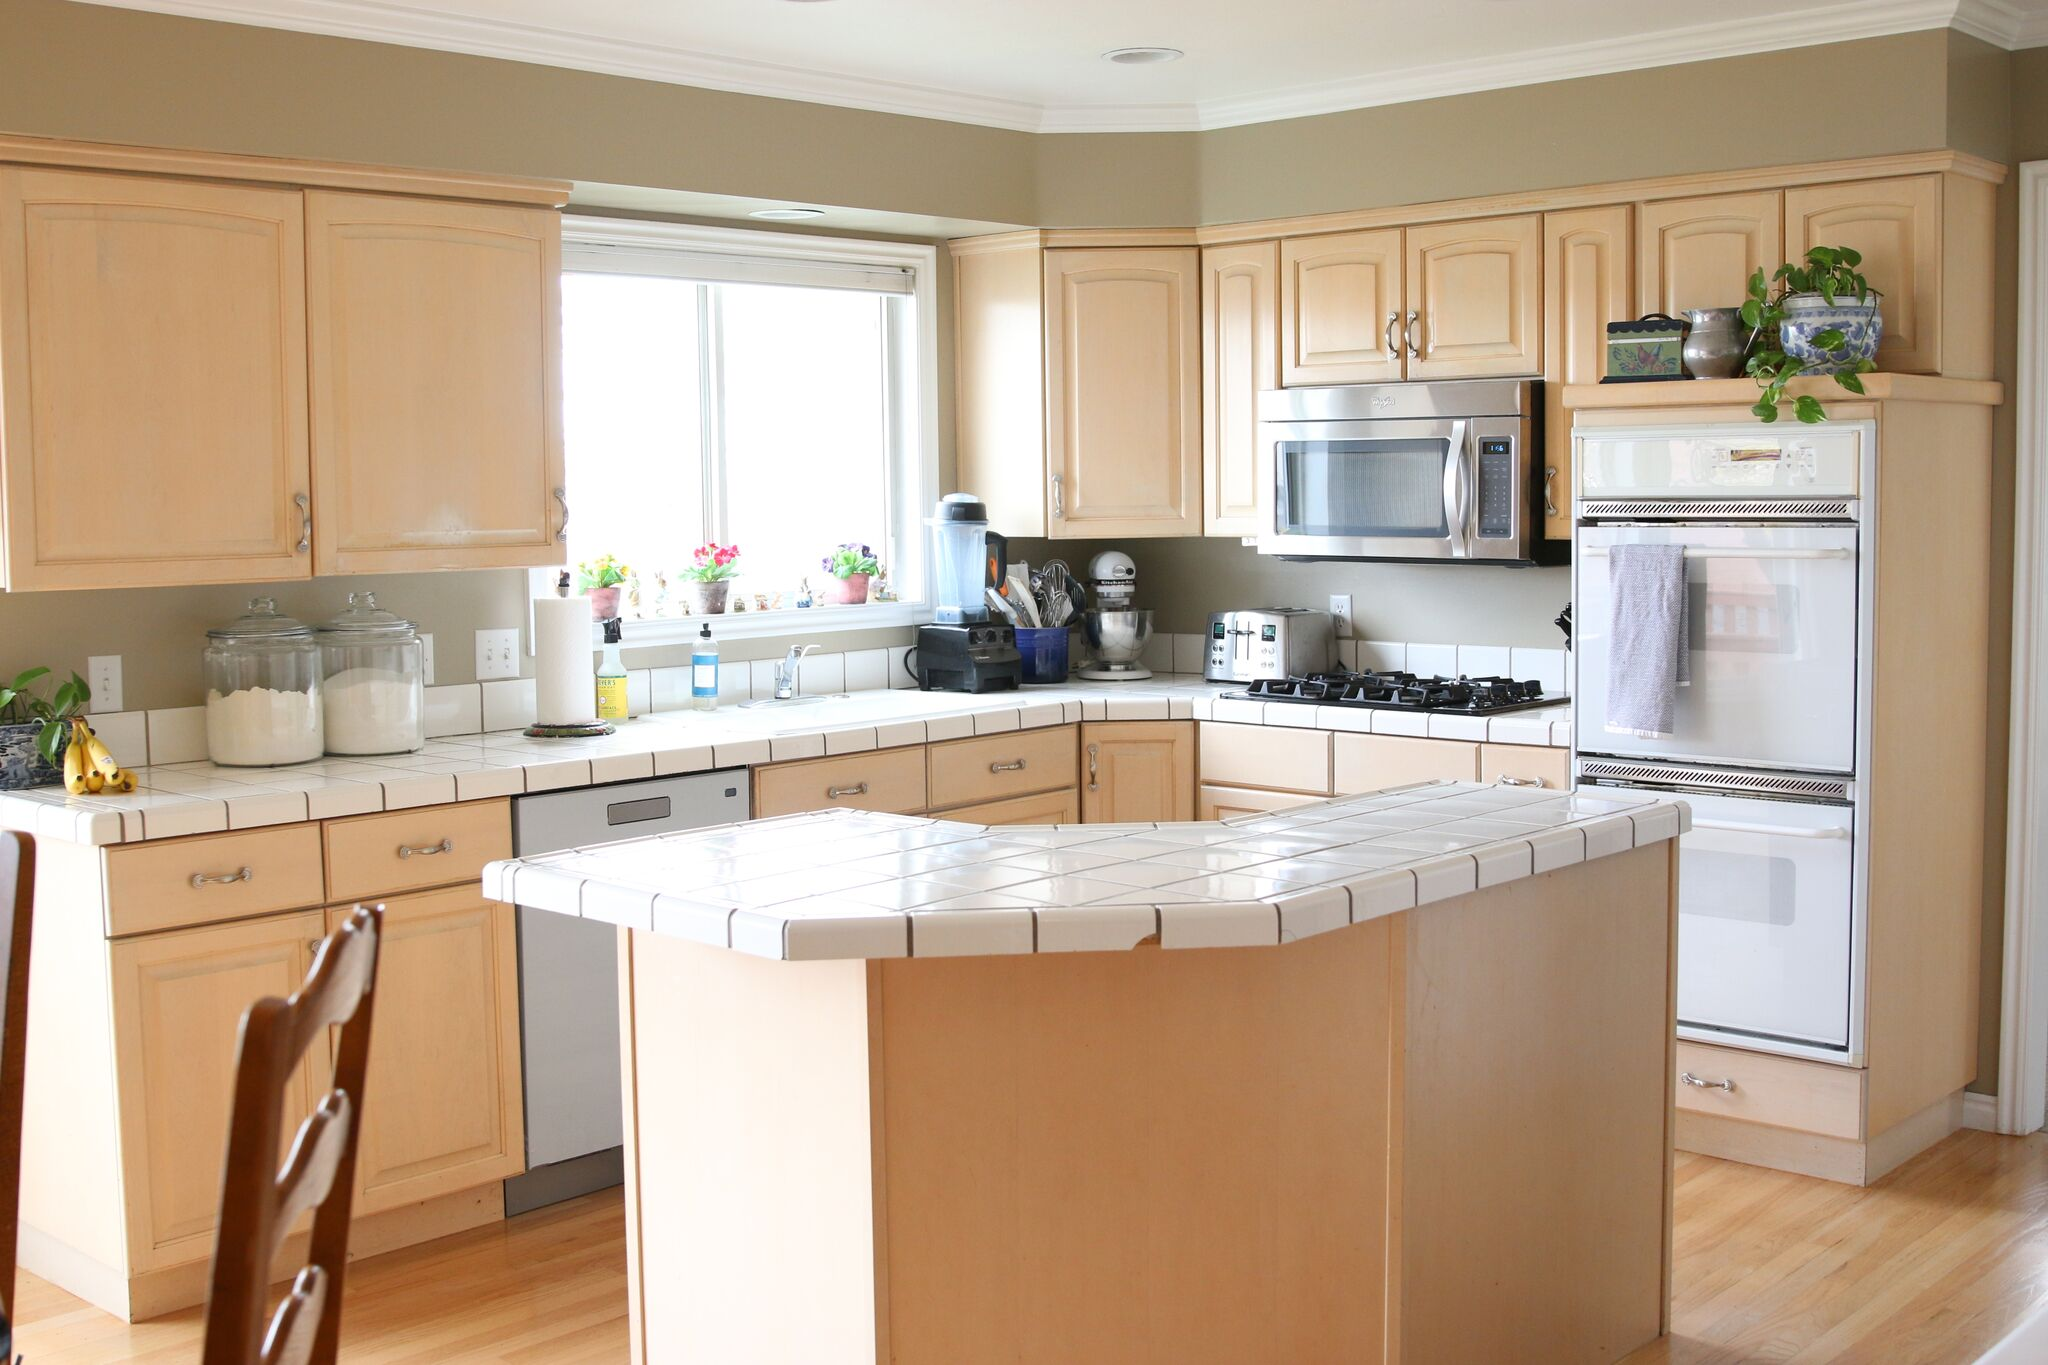 kitchen remodel pictures bosch mixer evergreen reveal